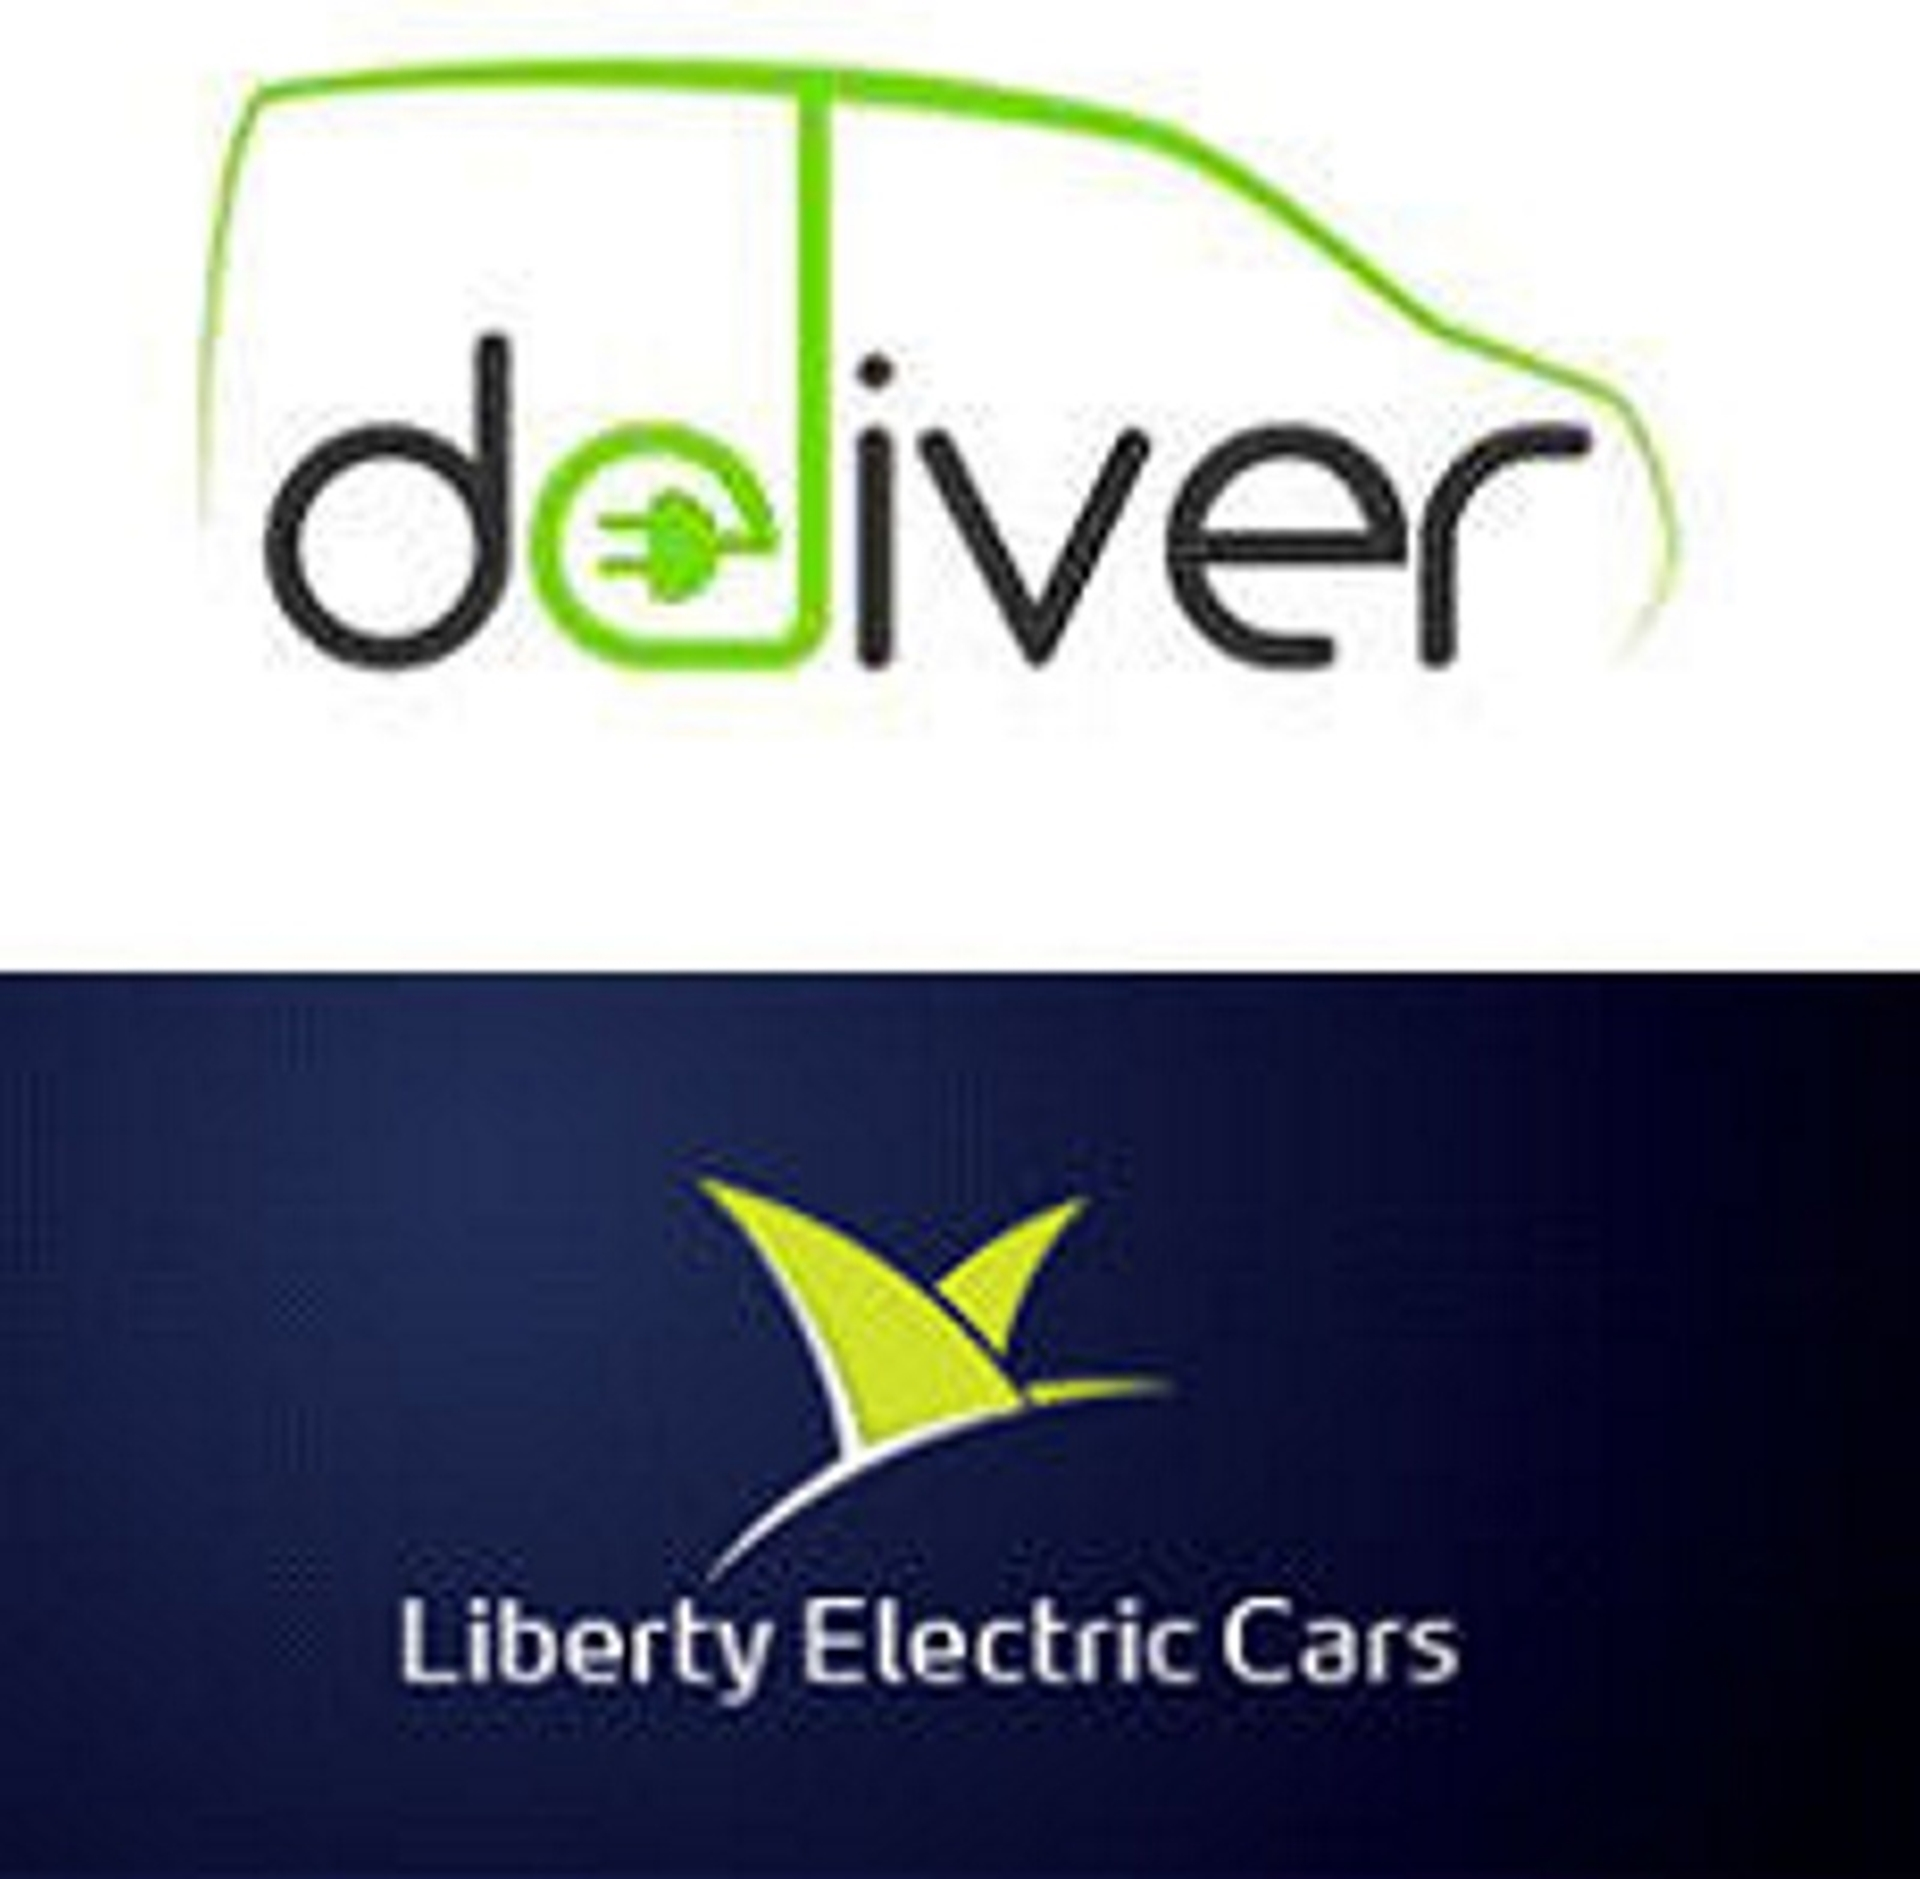 liberty electric cars